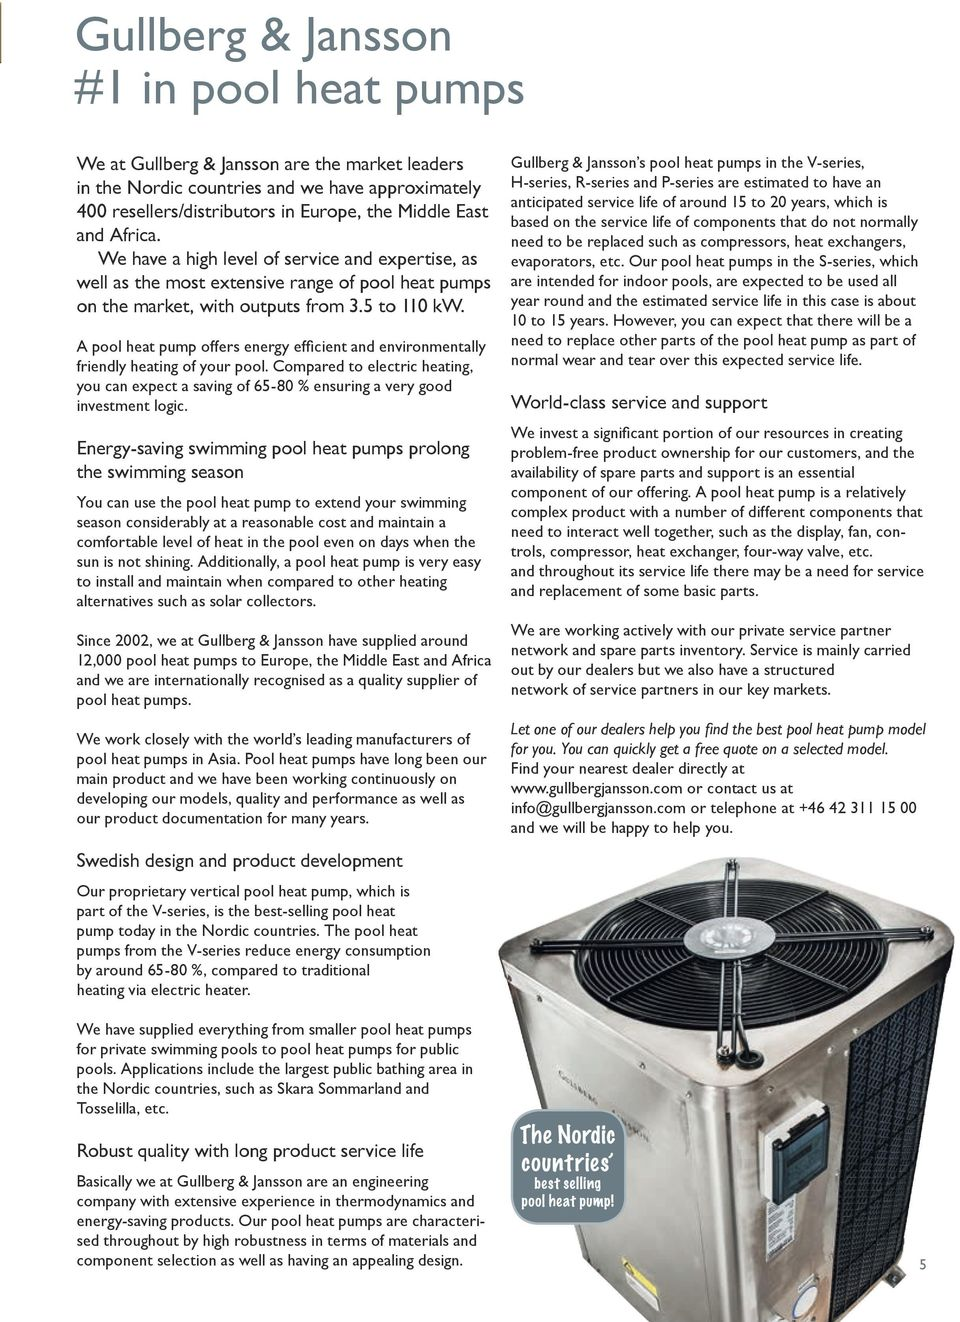 Swimming pool spa product catalogue pdf a pool heat pump offers energy efficient and environmentally friendly heating of your pool compared freerunsca Choice Image